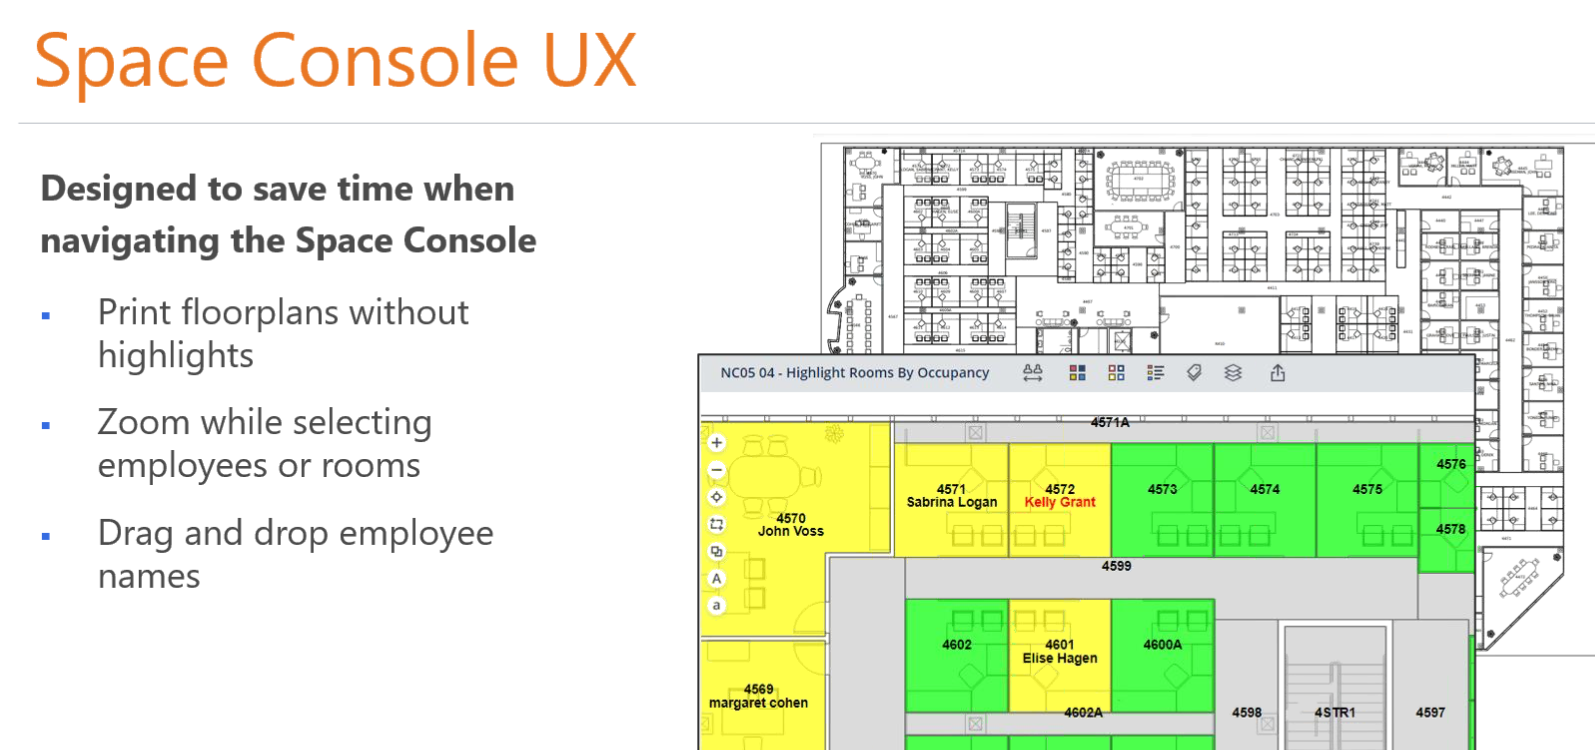 Machine generated alternative text: Space Console UX  Designed to save time when  navigating the Space Console  Print floorplans without  highlights  Zoom while selecting  employees or rooms  Drag and drop employee  names  ell'  NCOS 04.  Highlight Rooms By Occupancy  4571  Sabrina Logan  4602  4572  Kelly Grant  Elise Hagen  4574  4570  John Voss  4569  margaret cohen  4575  4STR1